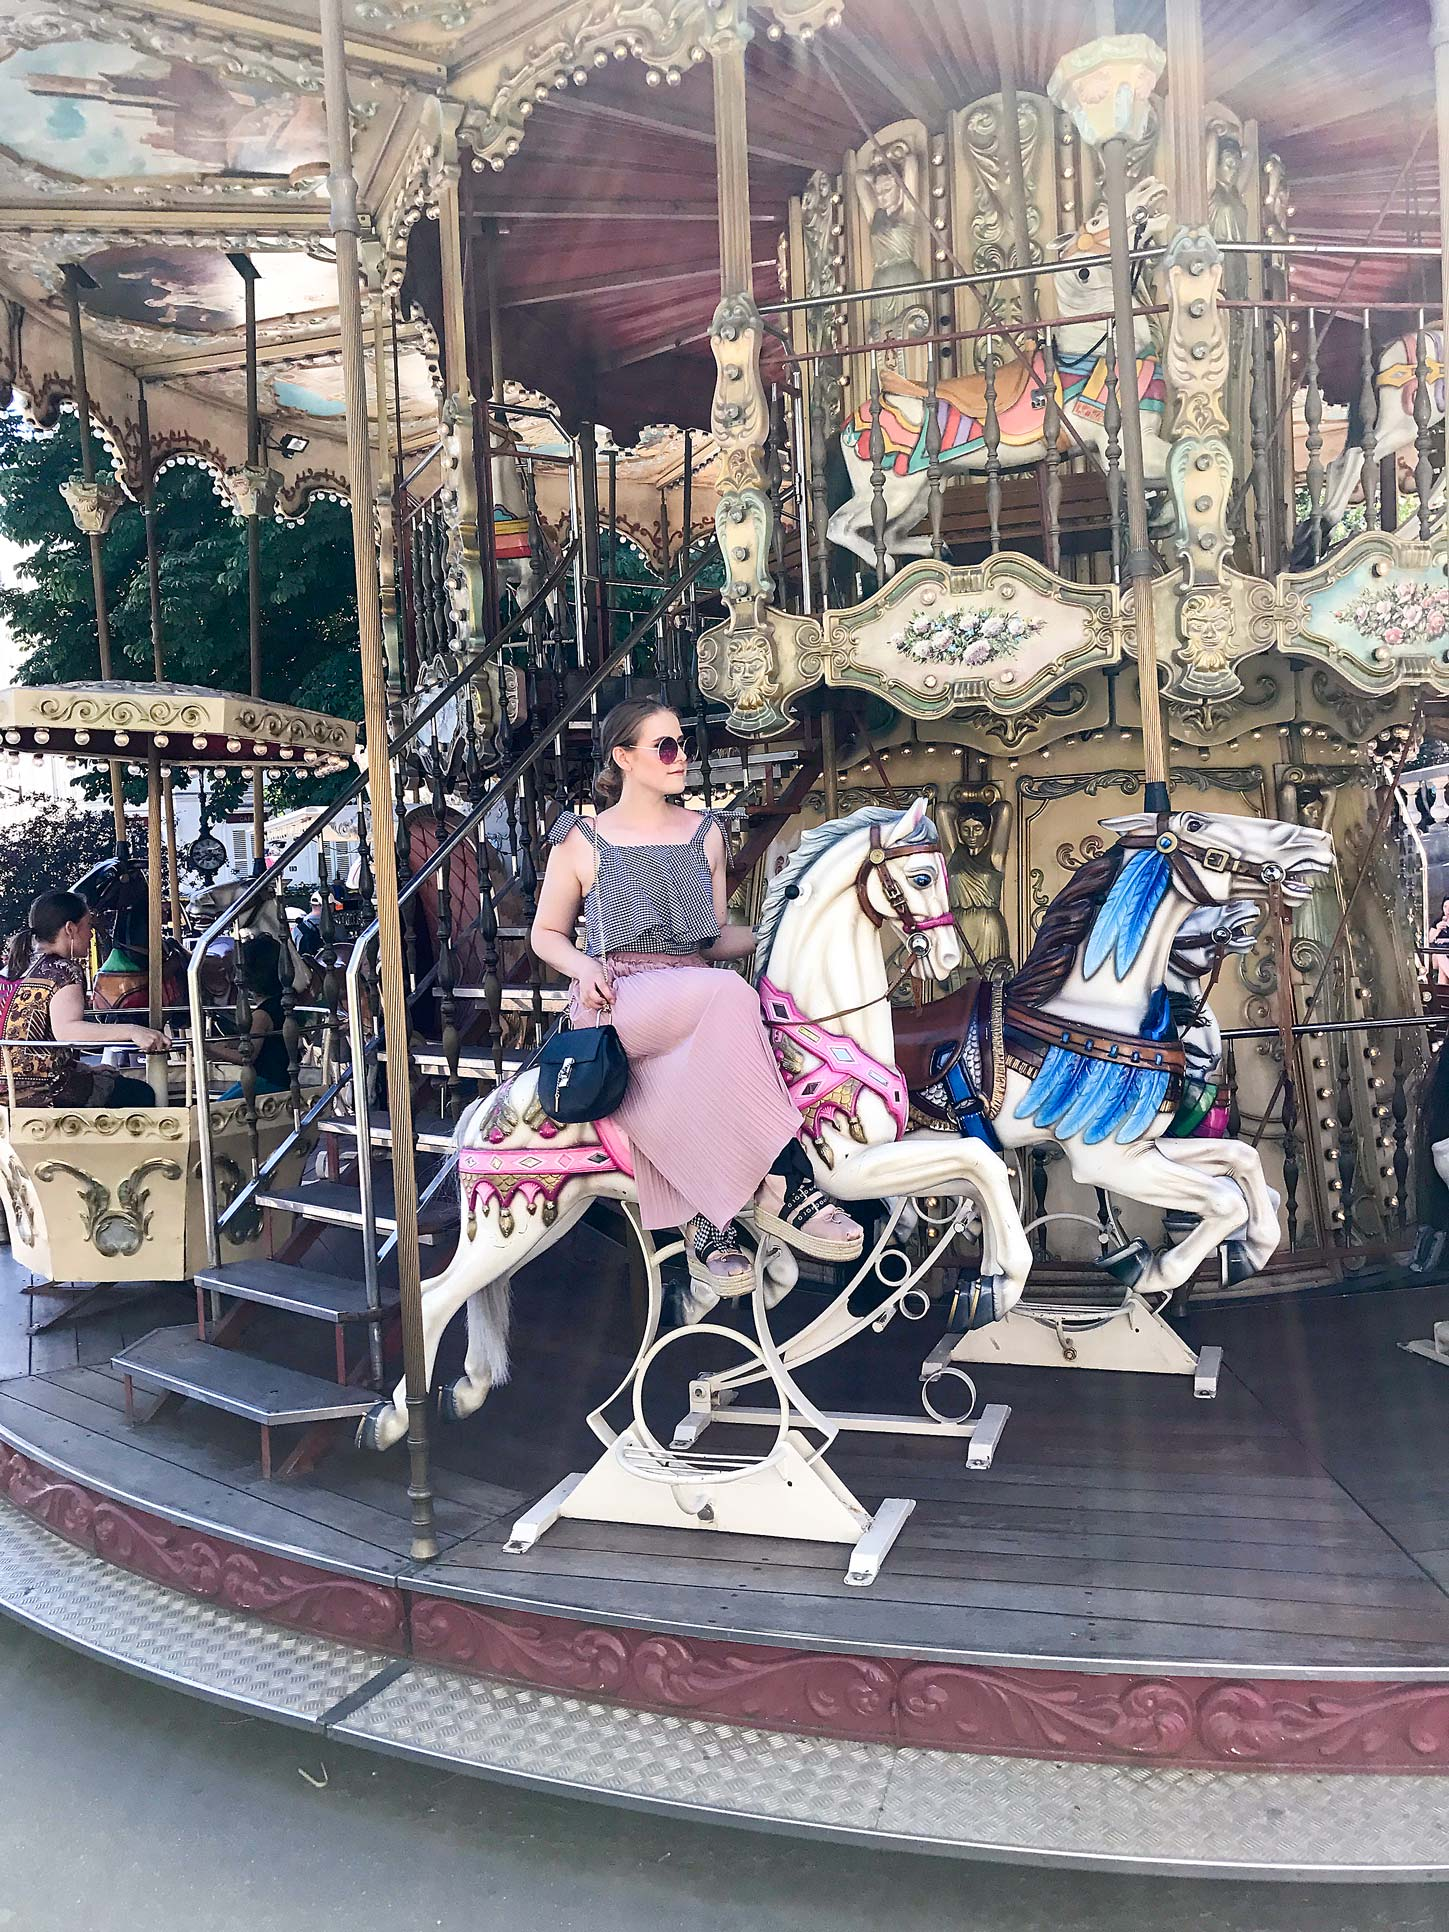 Sacre-Coer-Carousel-Paris-Travel-Guide-Flora-Fallue